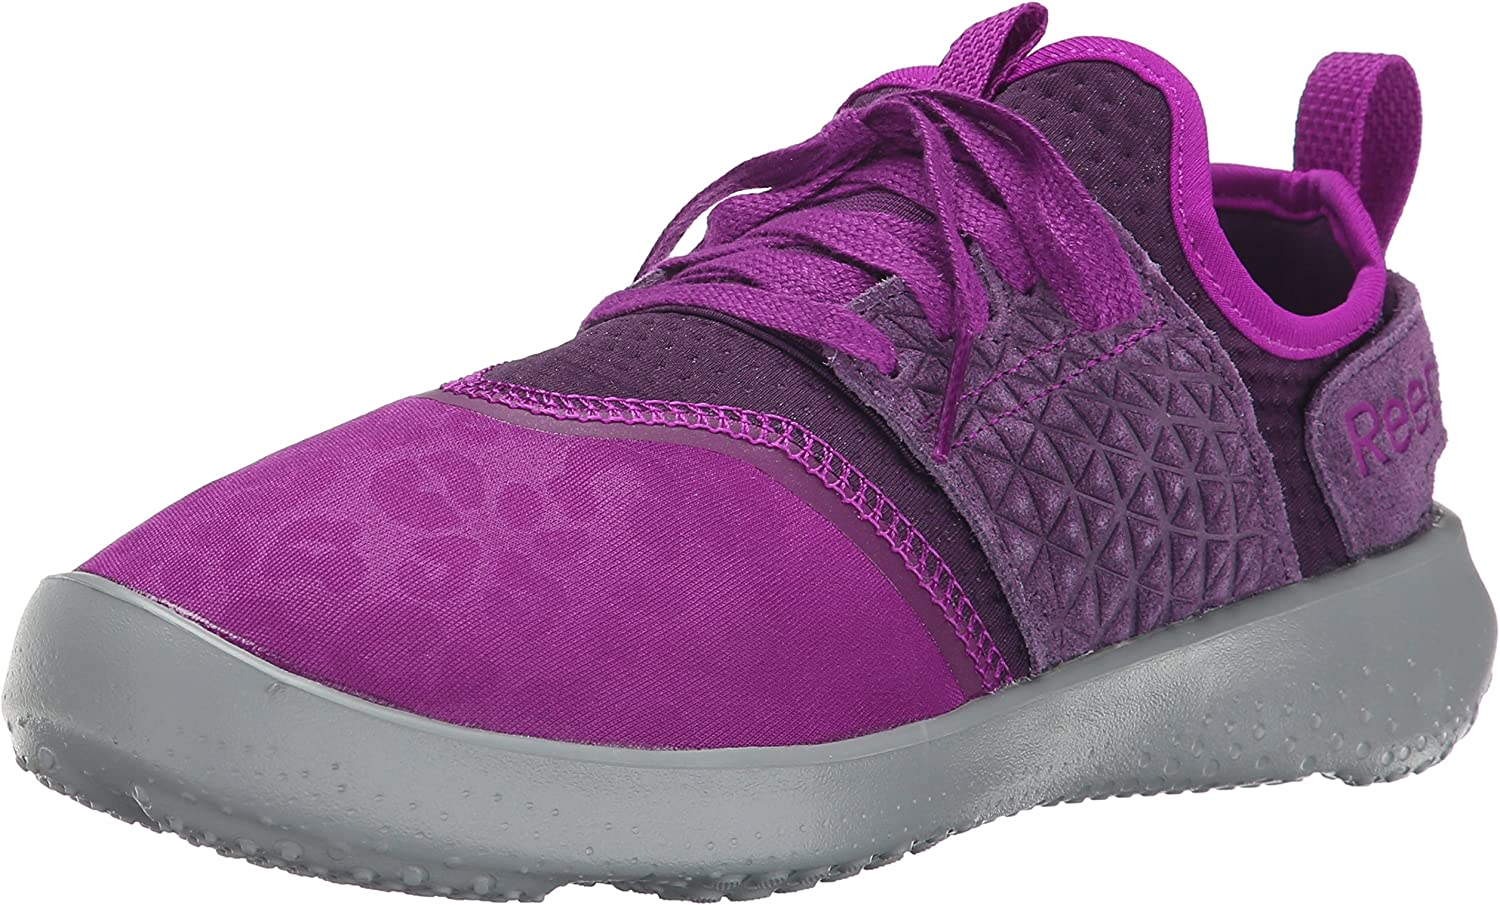 Reebok Women's Sole Identity Walking shoes